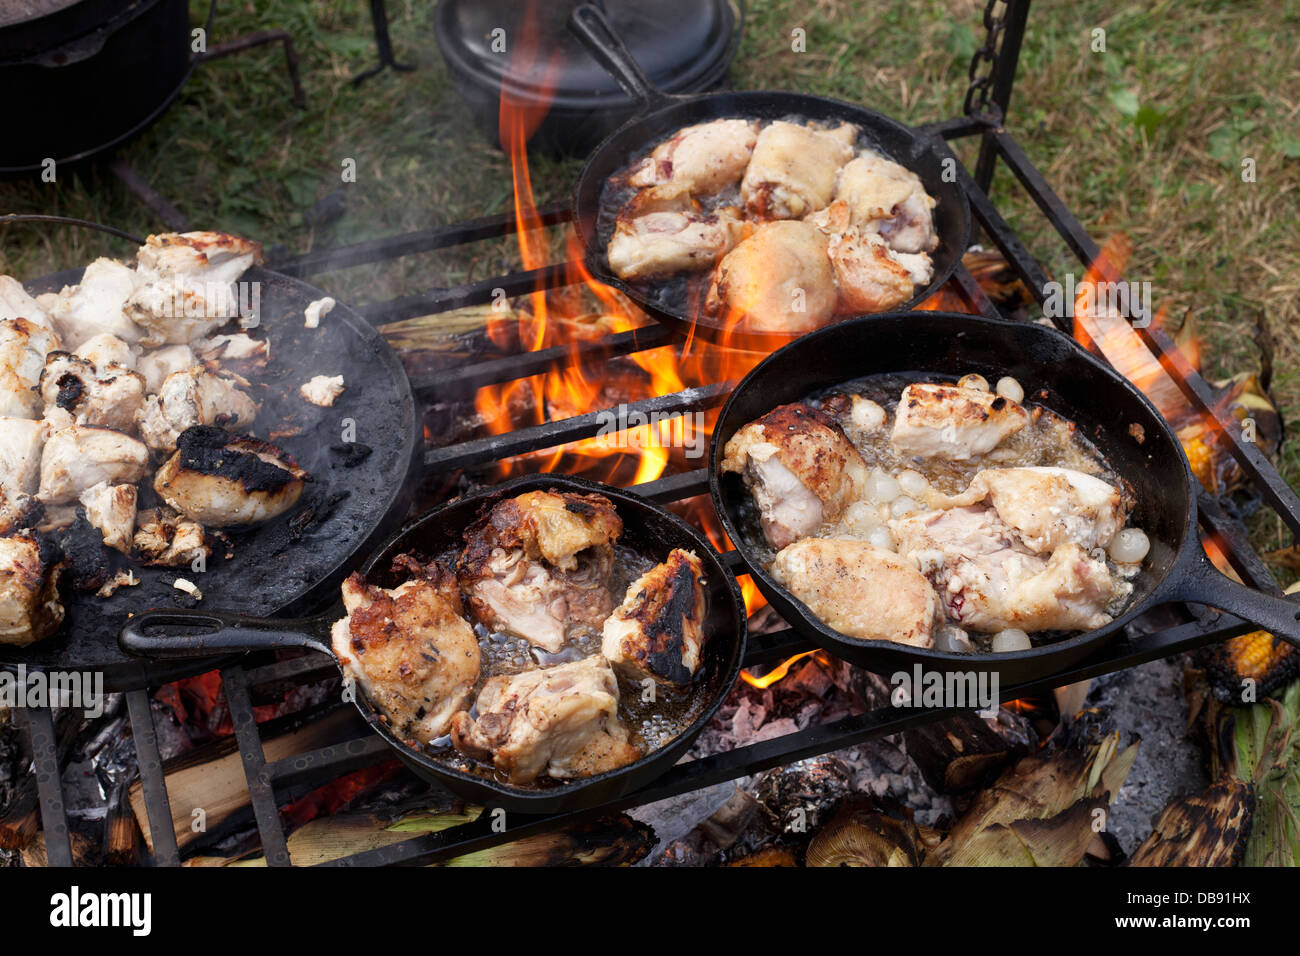 Canada,Ontario,Fort Erie, War of 1812 re-enactment of the Siege of Fort Erie, cooking chicken on an open fire grill Stock Photo